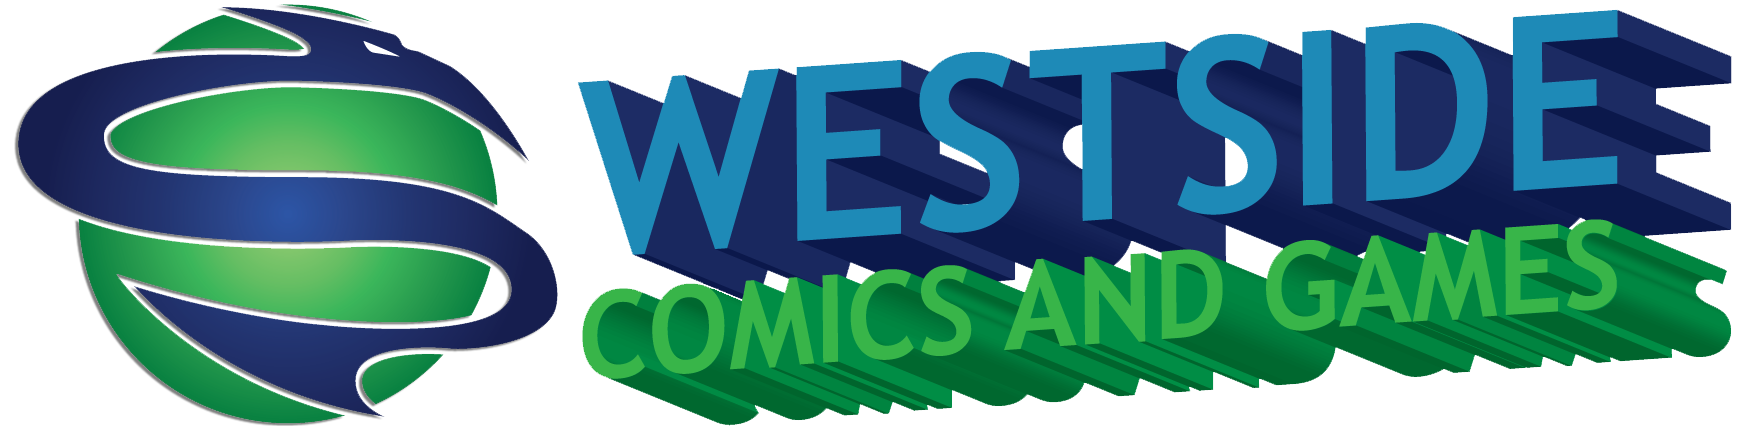 Westside Comics and Games